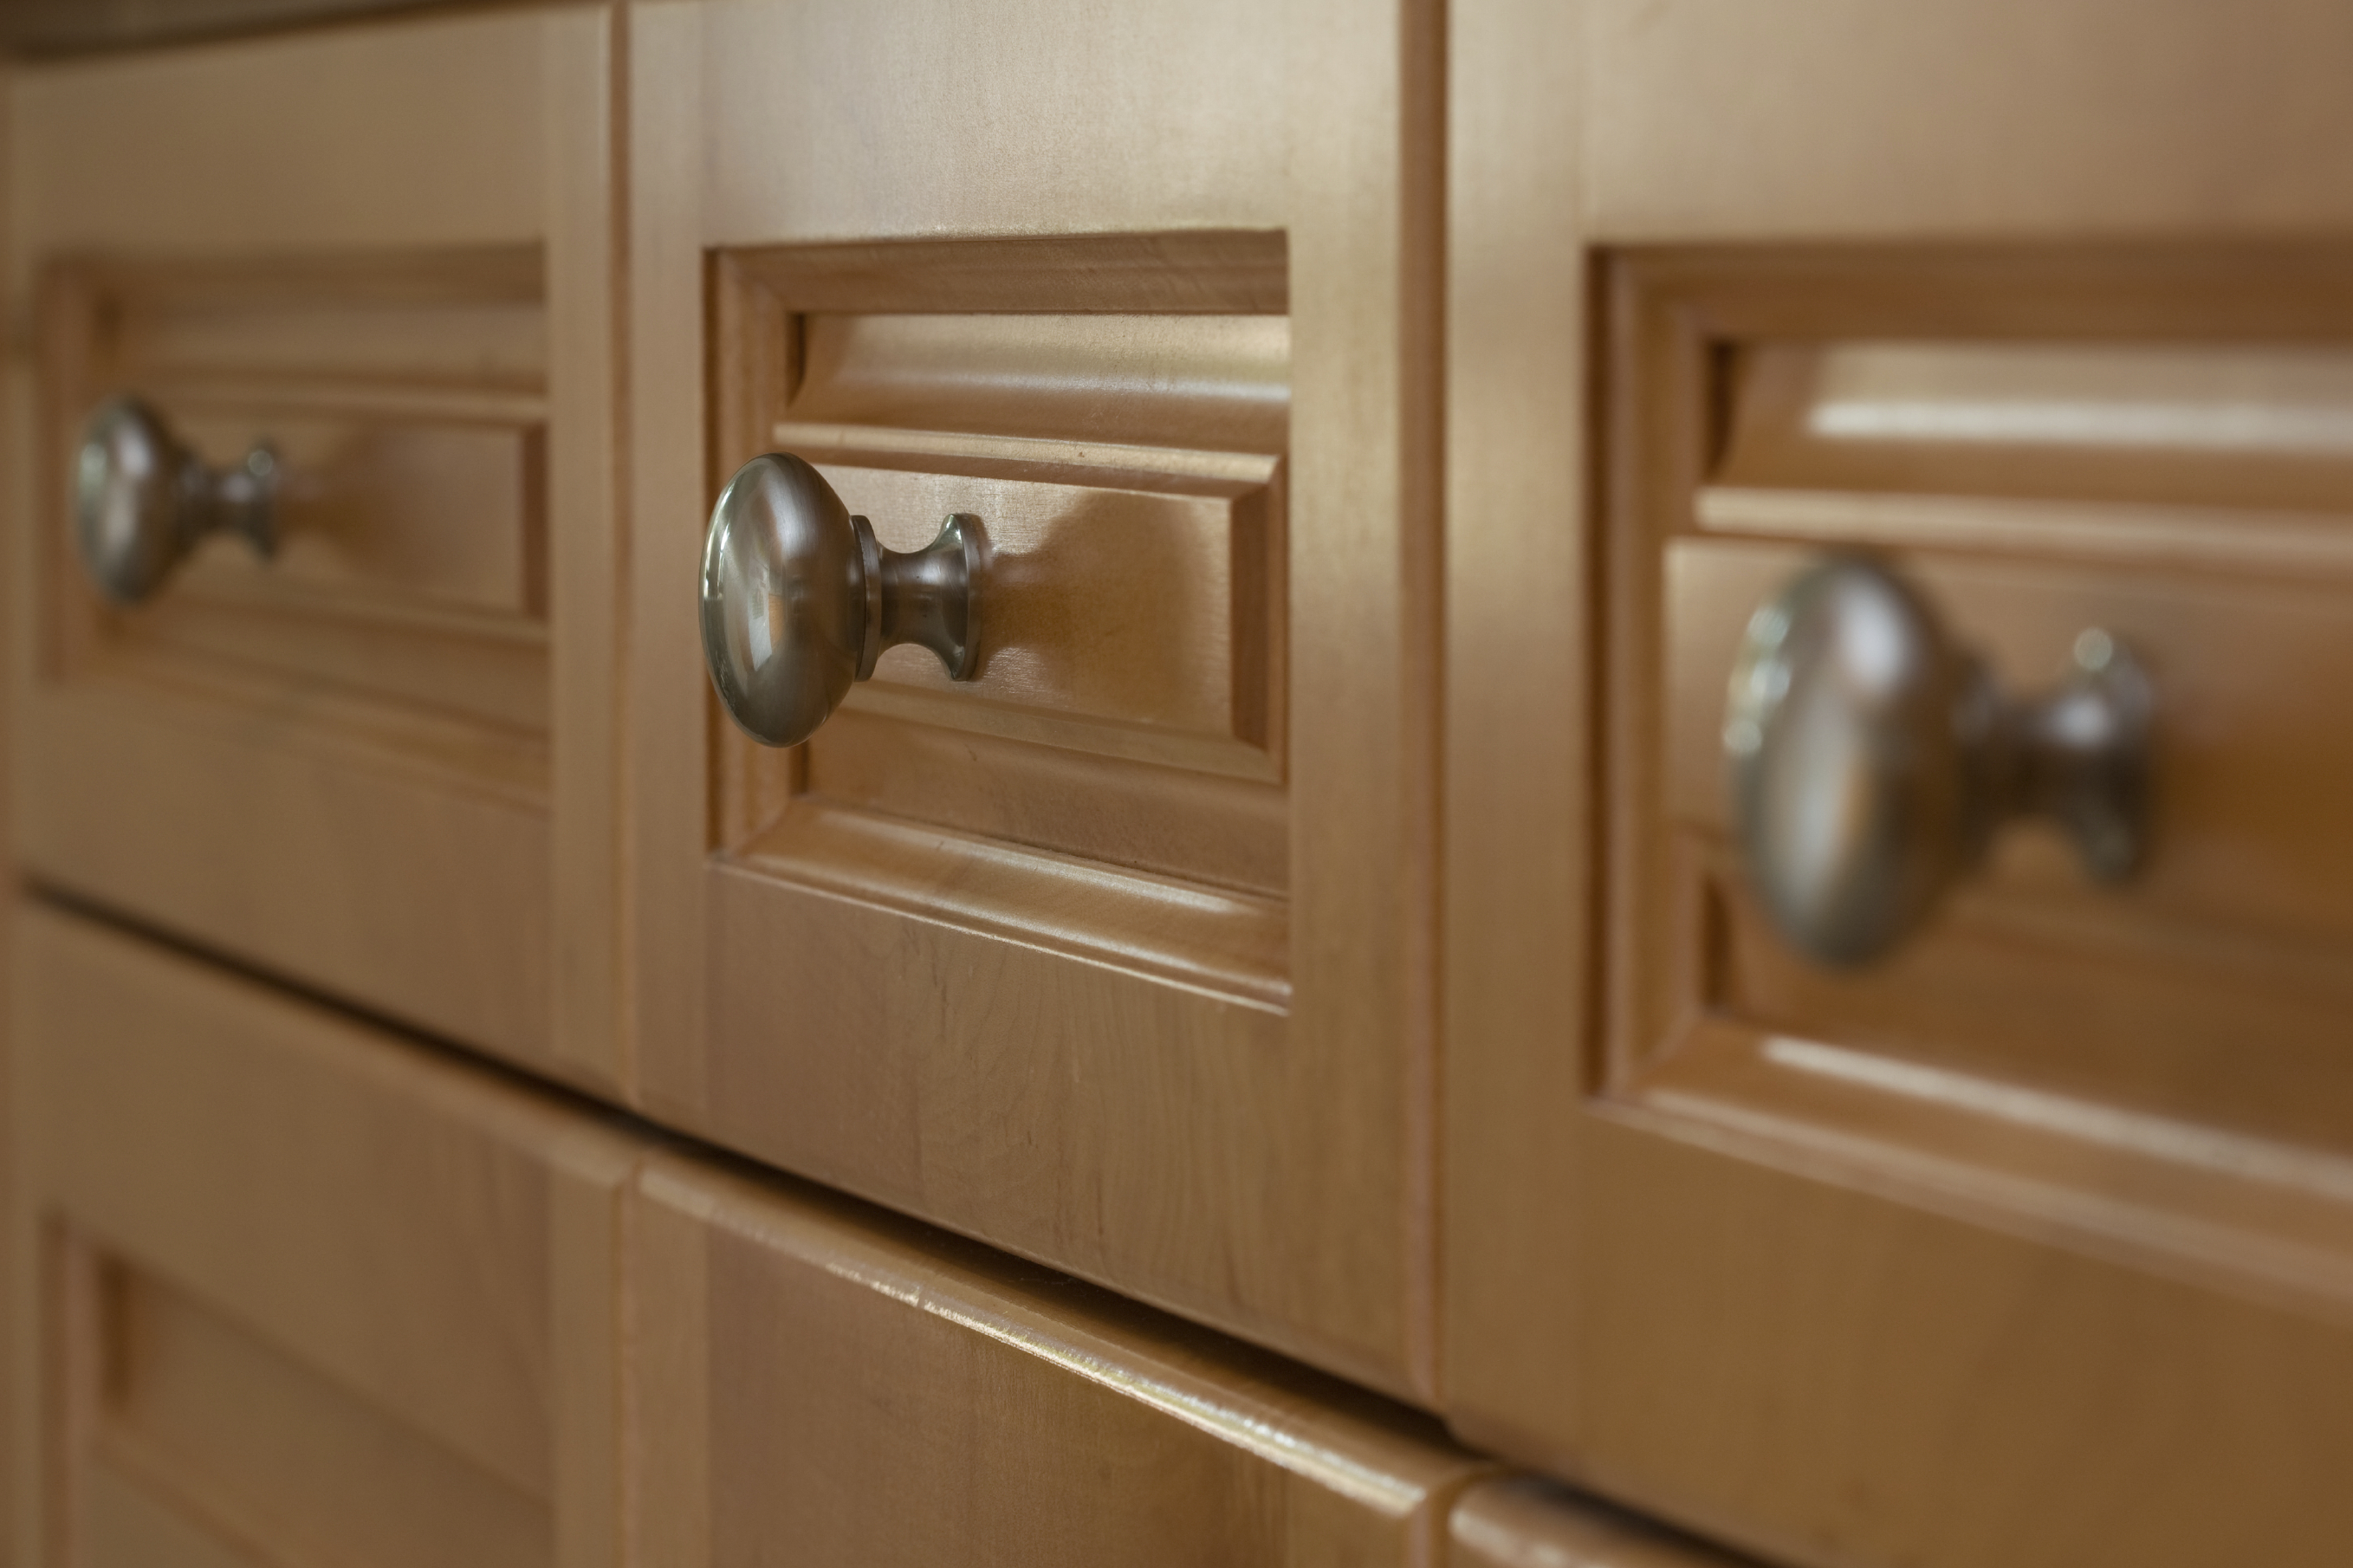 A reader asks what is the correct size for cabinet handles for Kitchen cabinet hardware